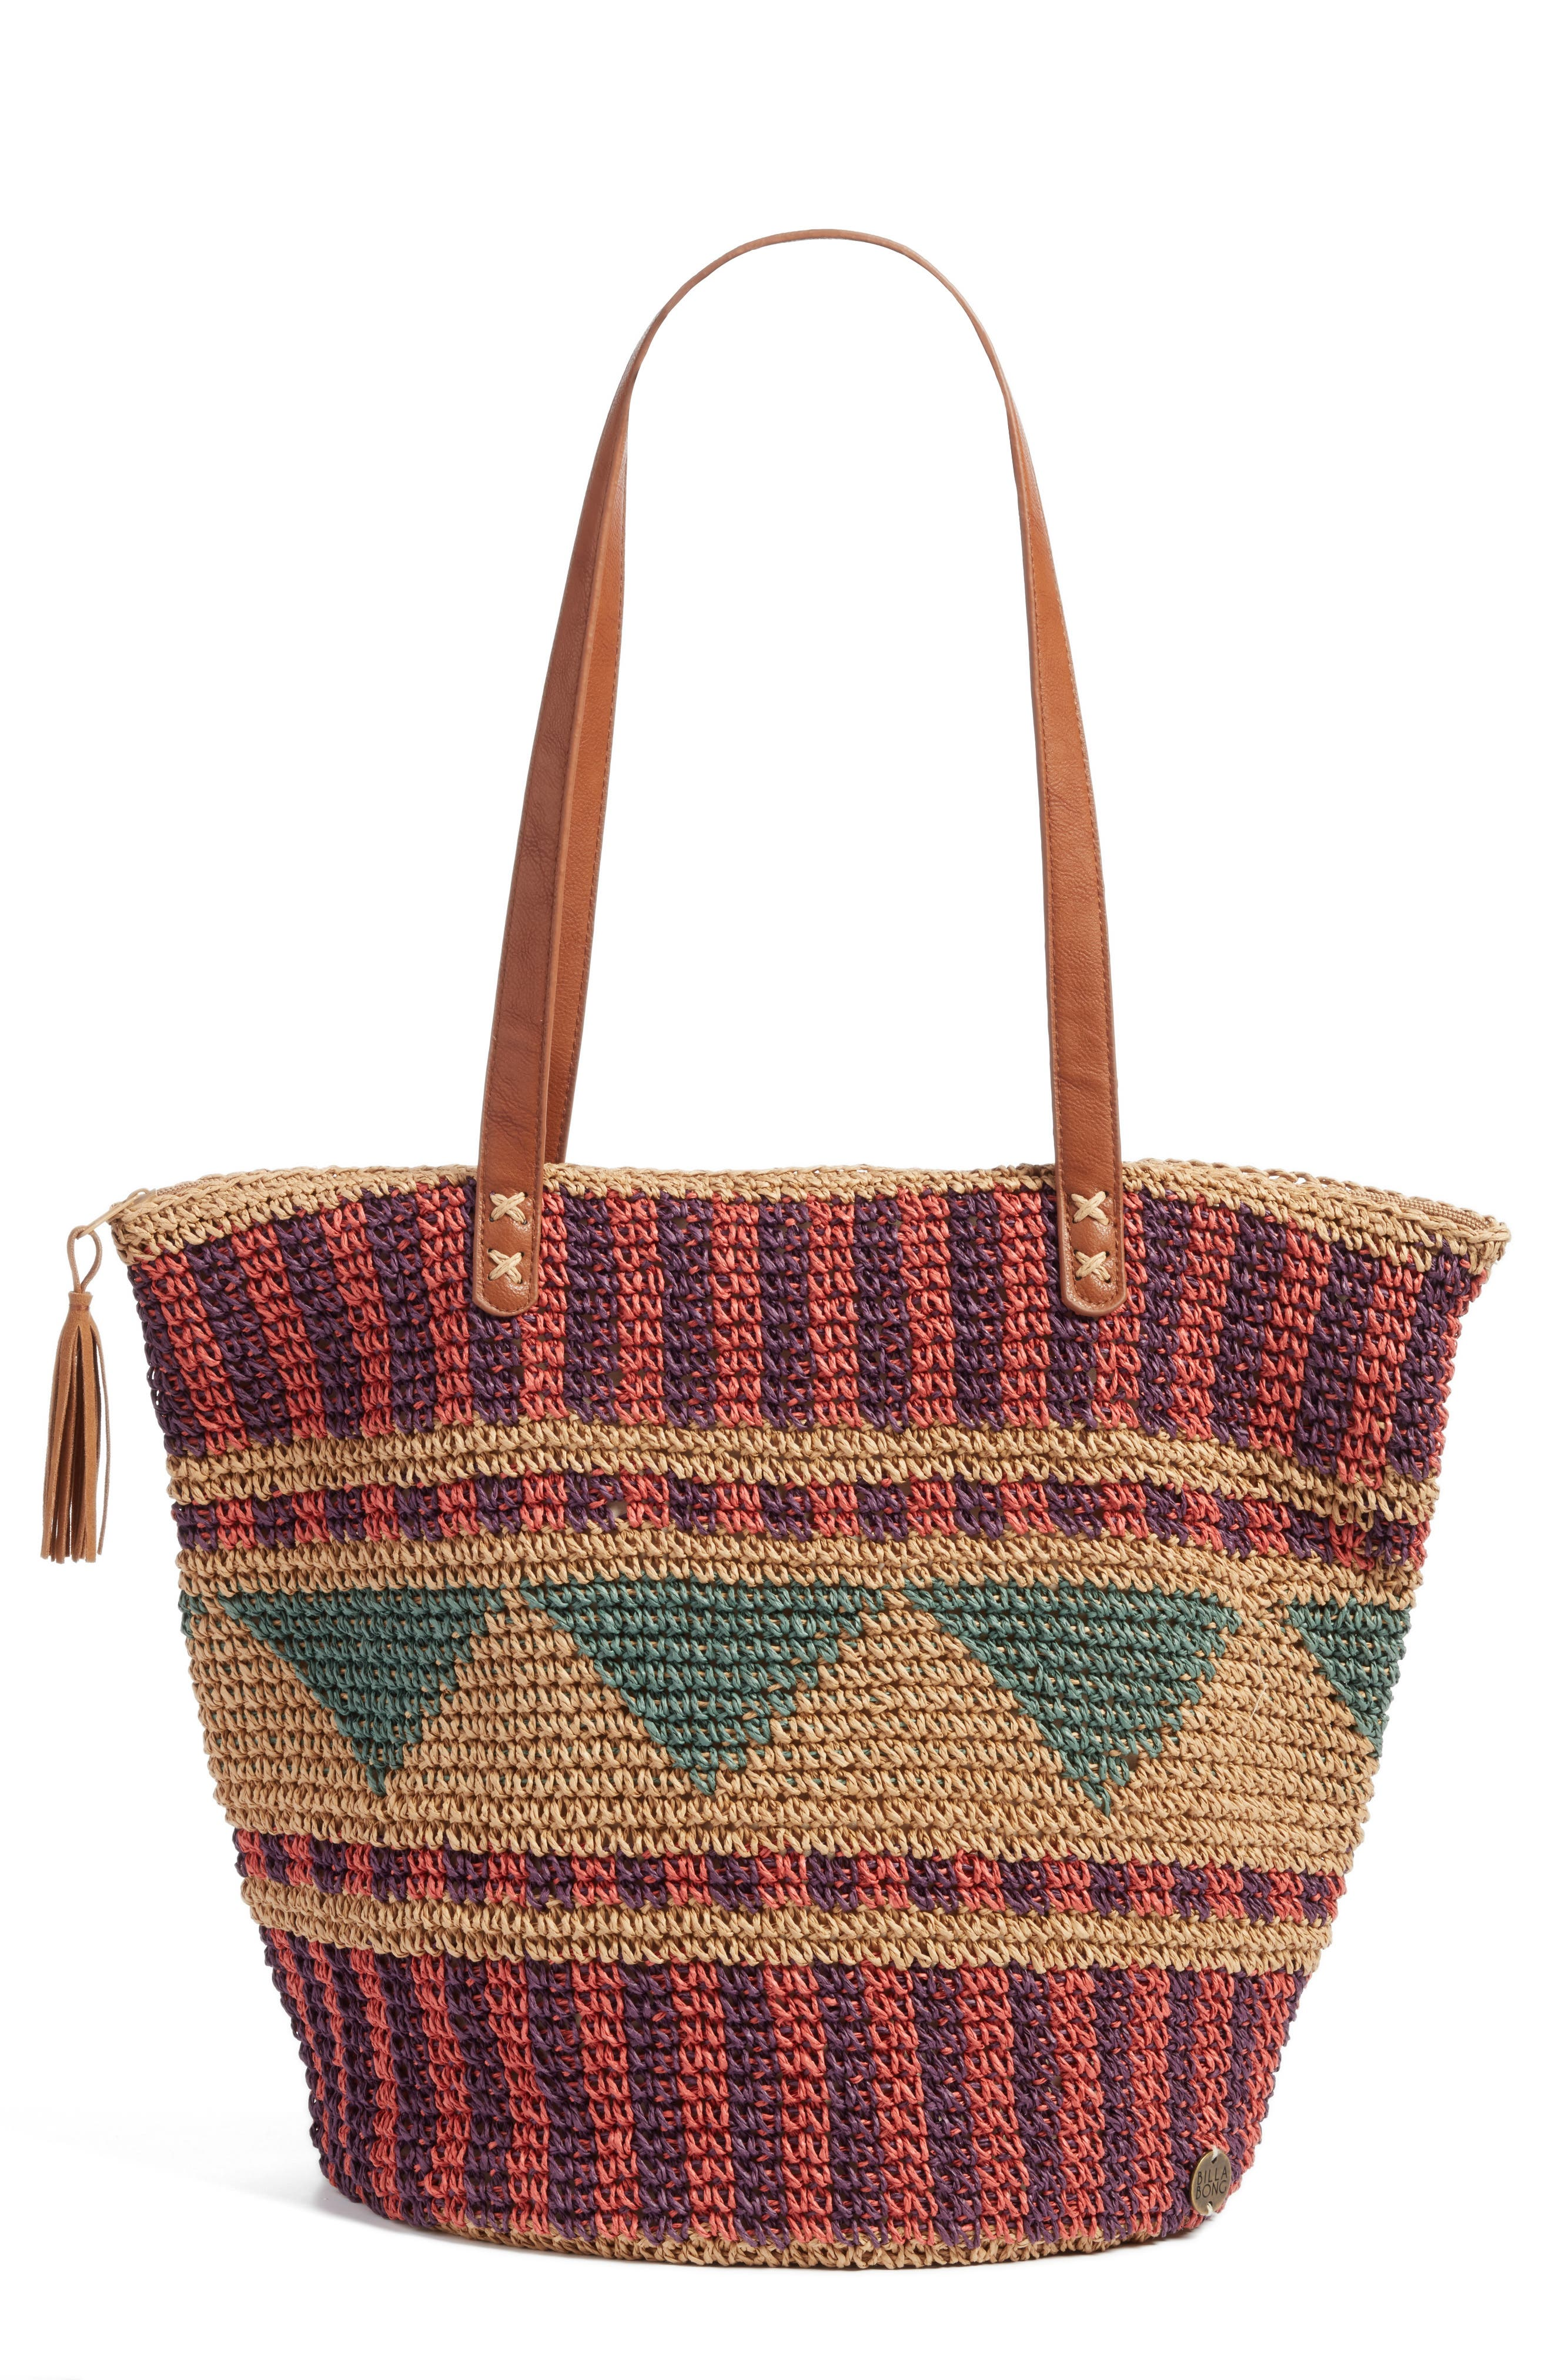 East of Dover Print Straw Tote,                         Main,                         color, Rosewater